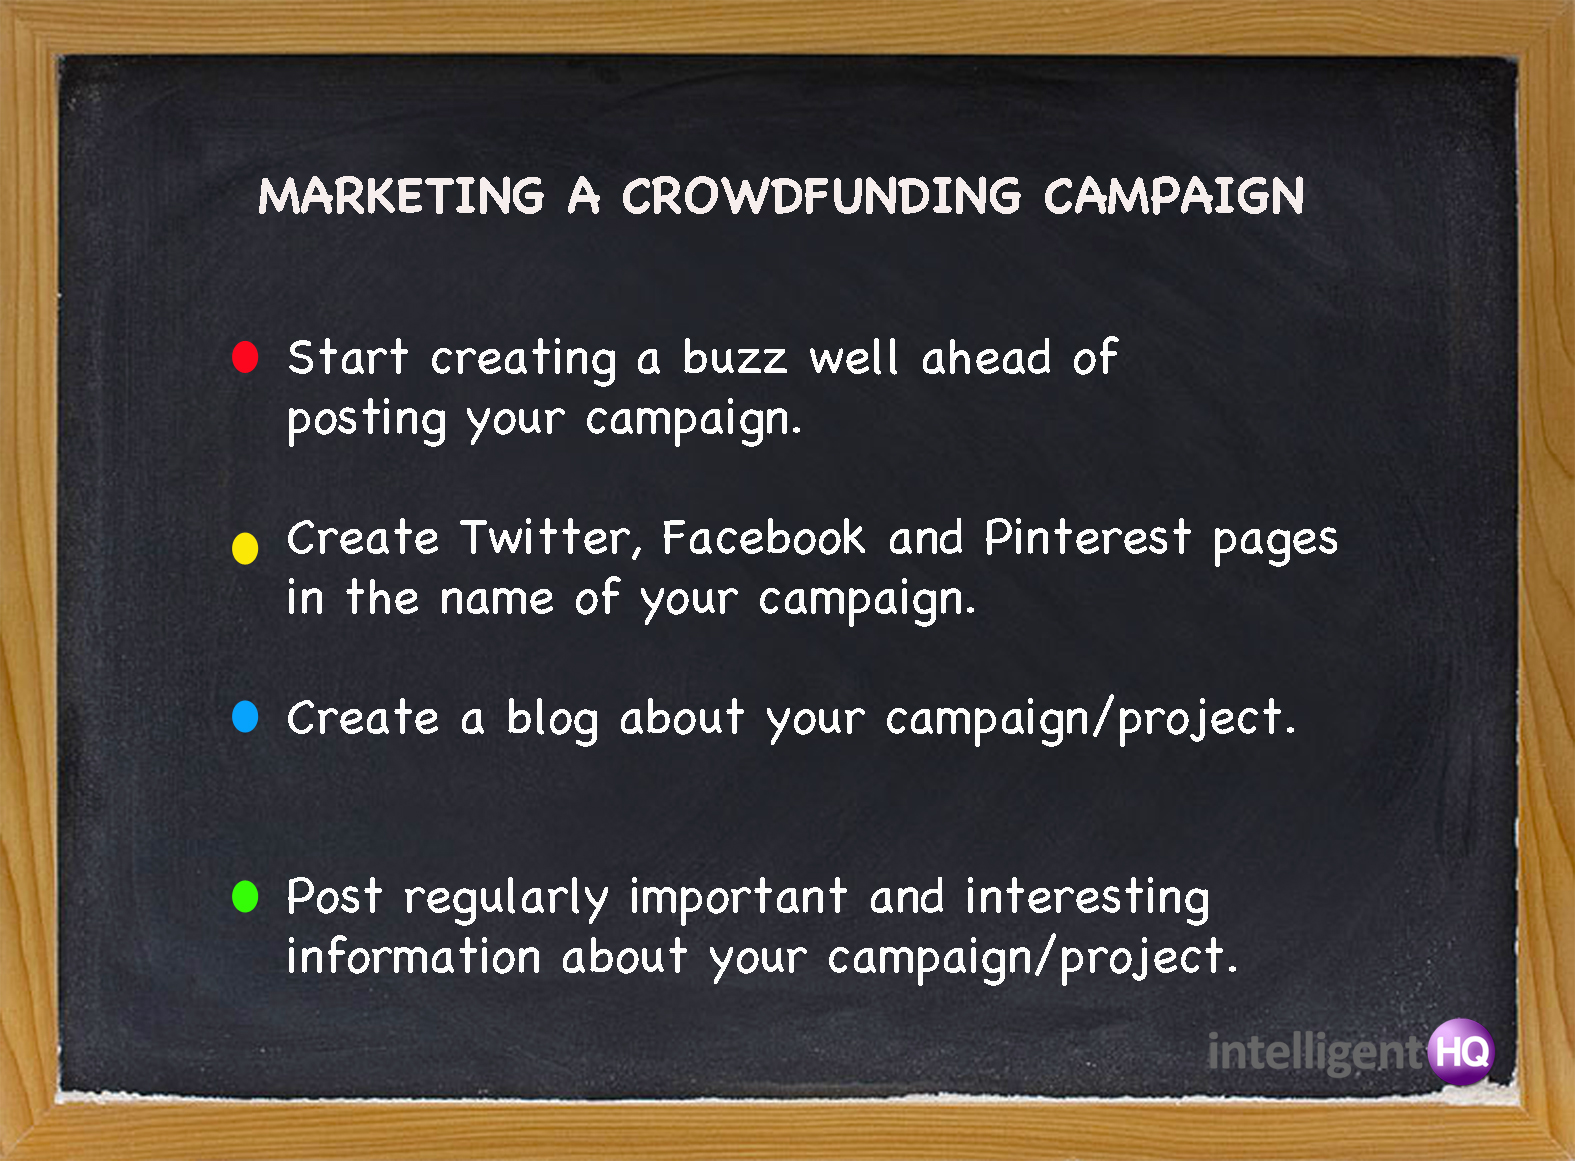 Four crucial steps to market a crowdfunding campaign IntelligentHQ